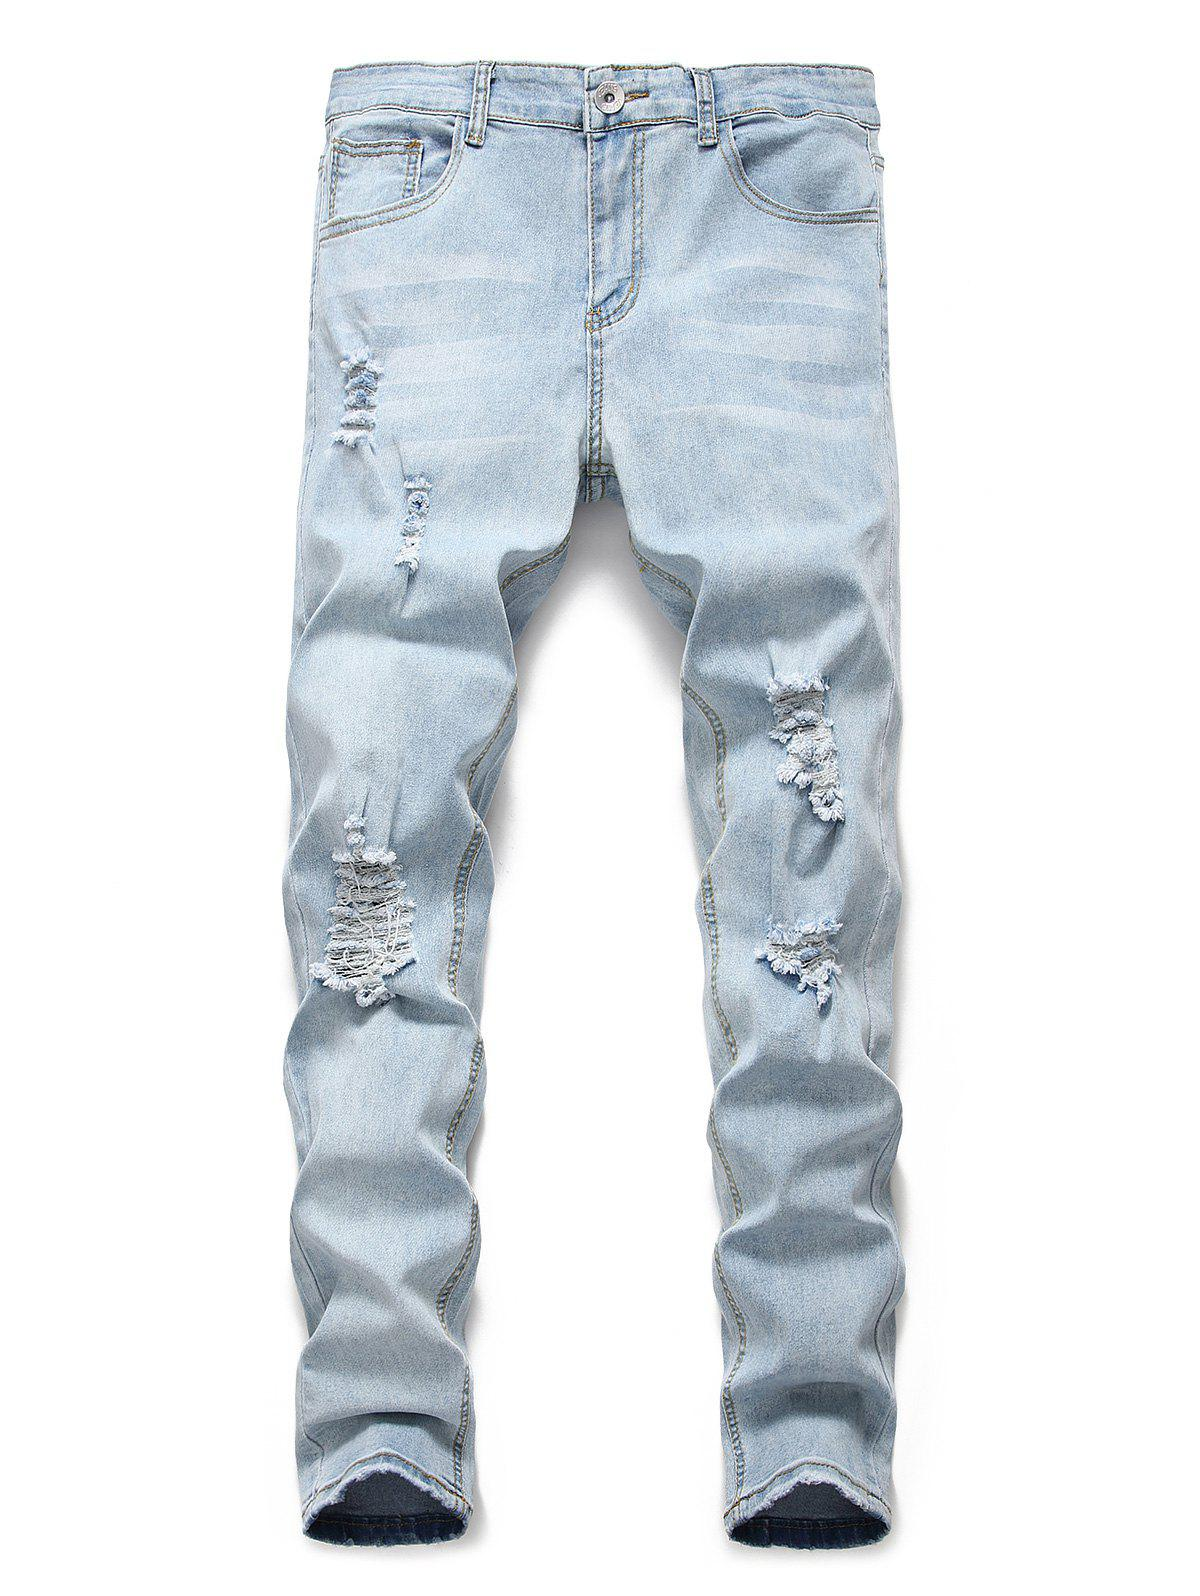 Light Wash Distressed Design Casual Jeans - JEANS BLUE 3XL